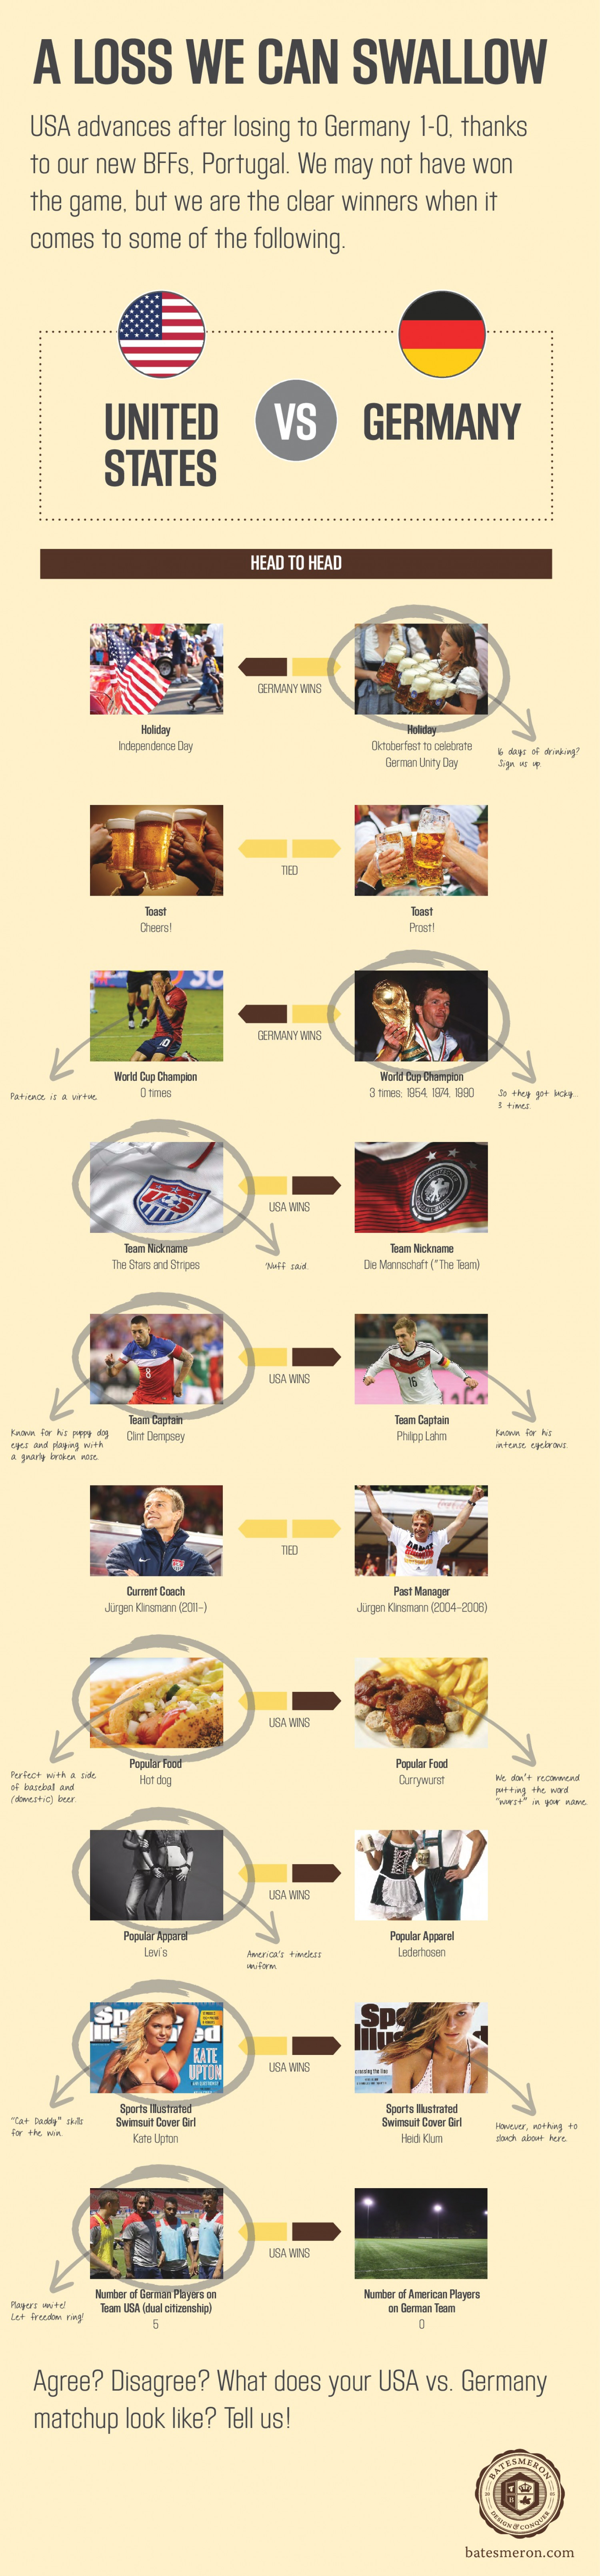 USA vs. Germany: Our Matchup Infographic